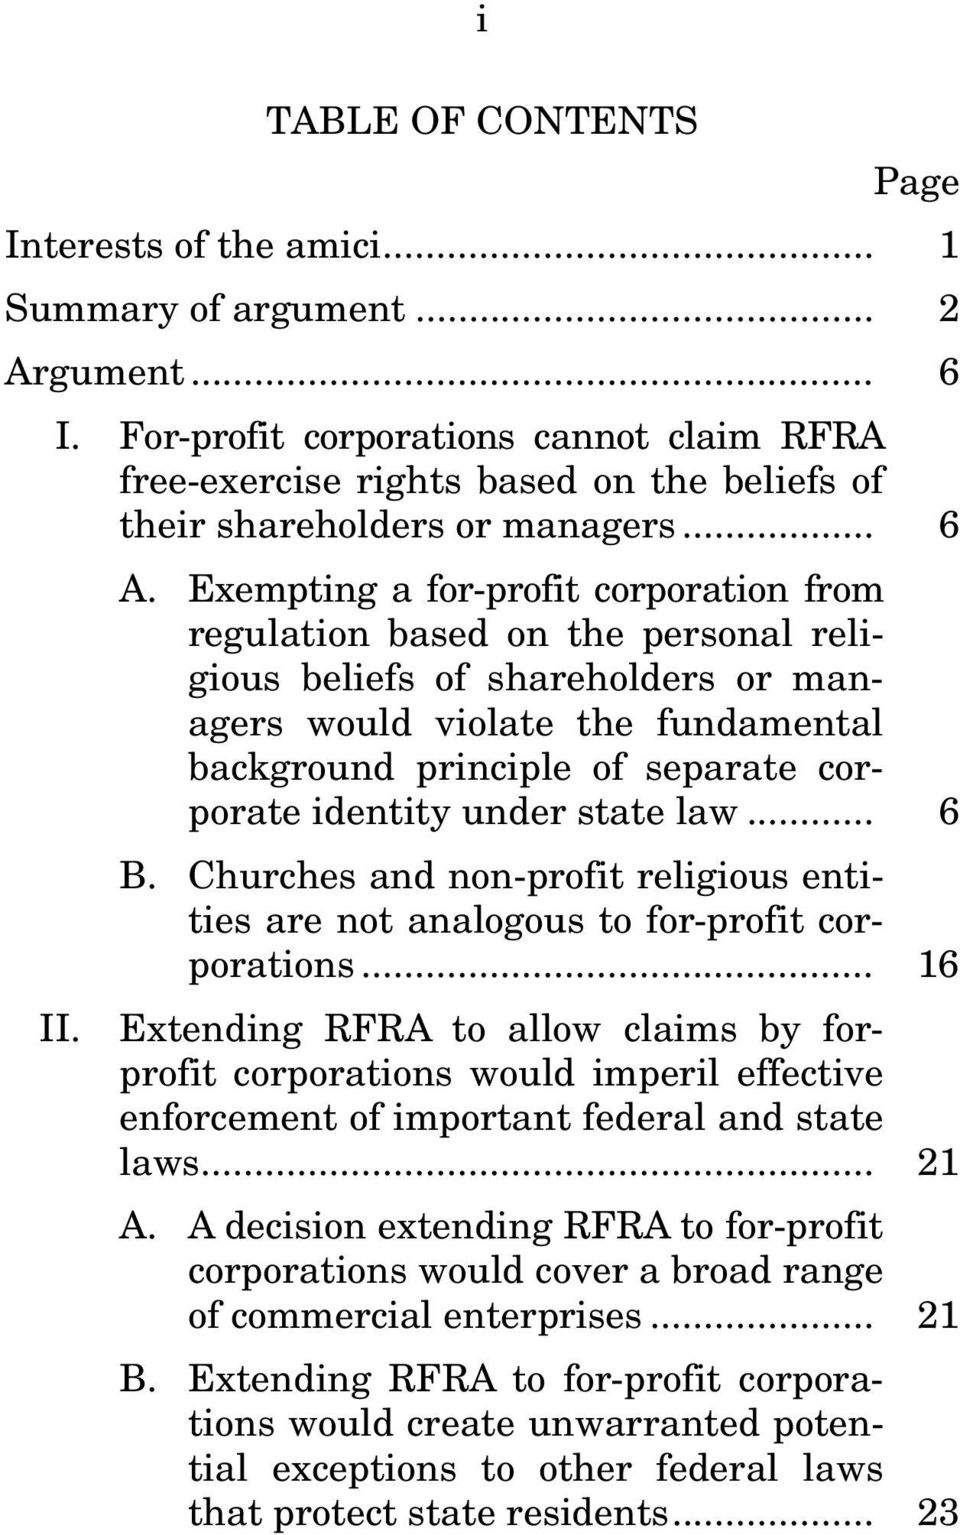 Exempting a for-profit corporation from regulation based on the personal religious beliefs of shareholders or managers would violate the fundamental background principle of separate corporate